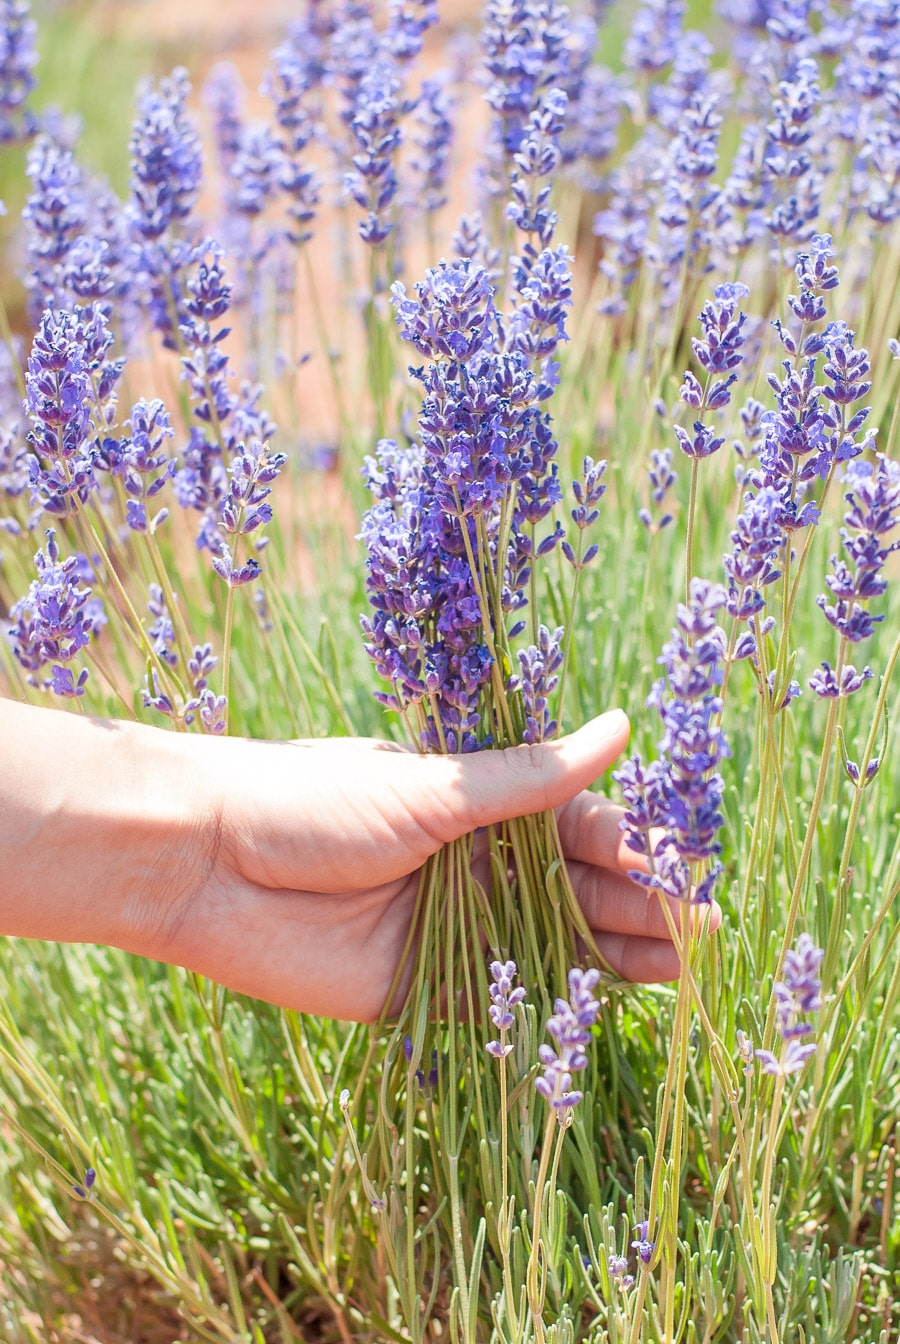 A hand grabbing a bunch of culinary lavender from the bush